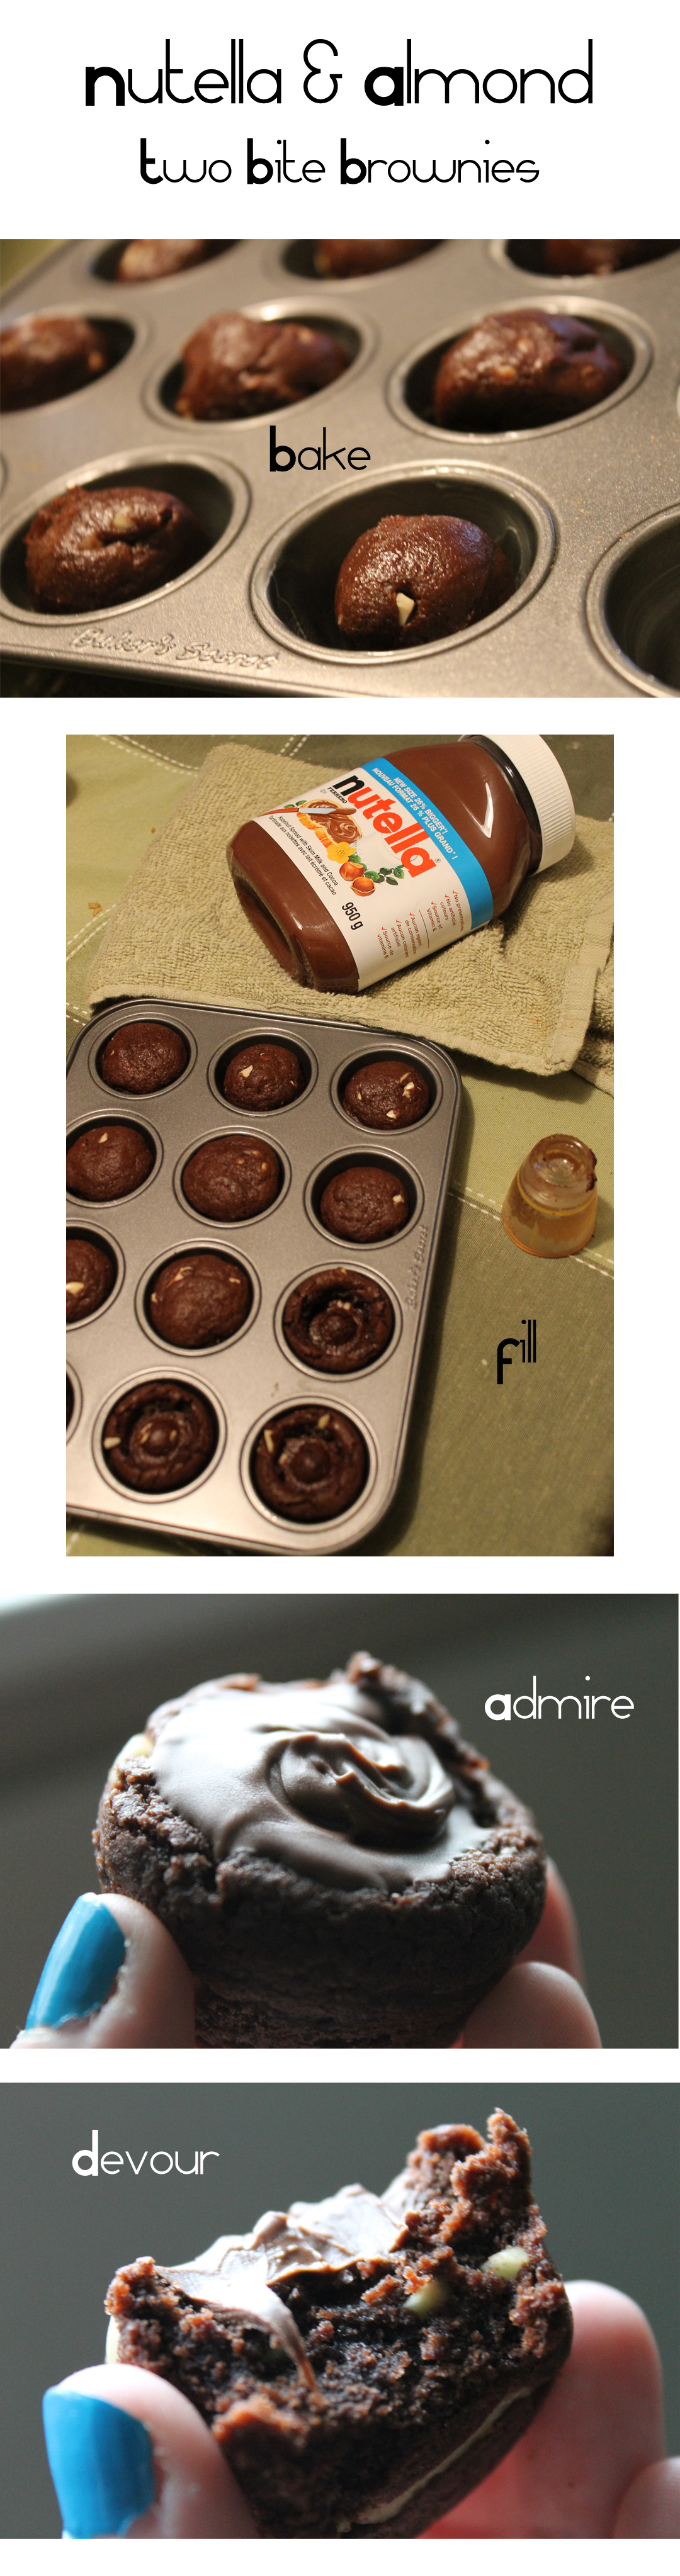 ... Archive » Recipe: Nutella Cookie Cups – Two Bite Brownie Edition